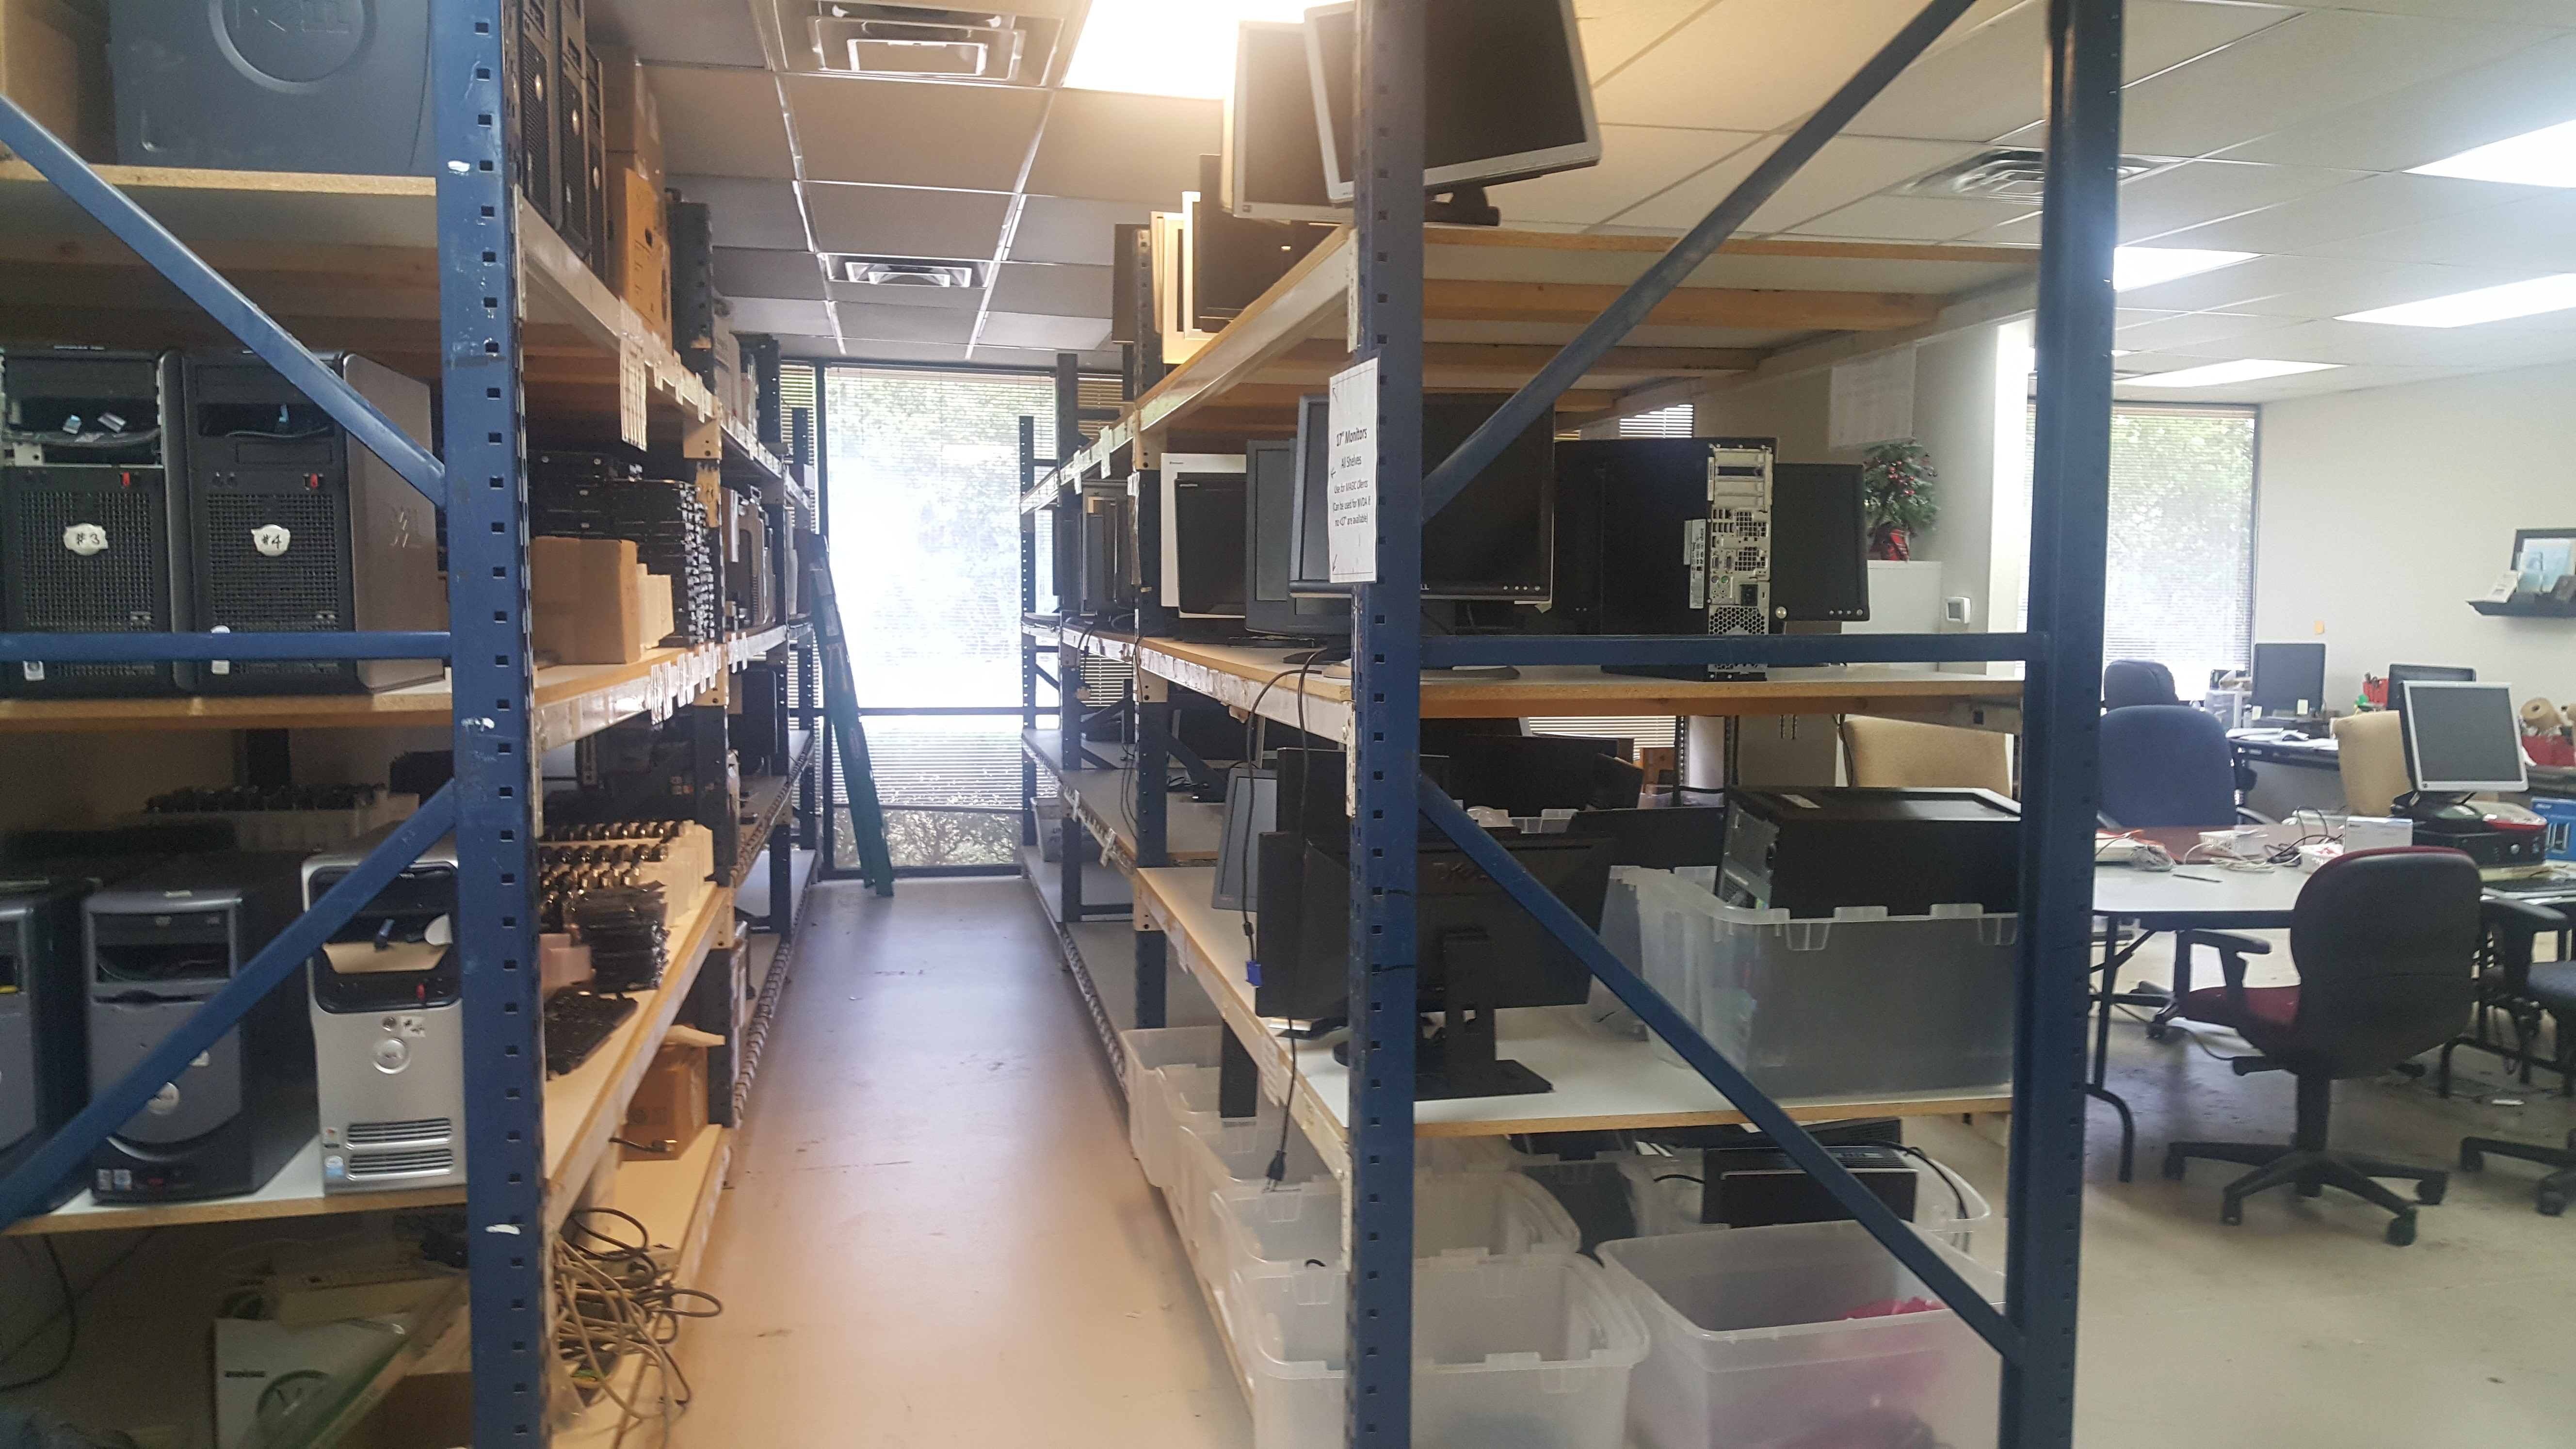 The storage shelves at our Refurbishing Center. On the right is our stock of monitors to ship out with desktops. On the left is our hard drive wiping station. We ensure drives are wiped to government standards before we use them in machines.